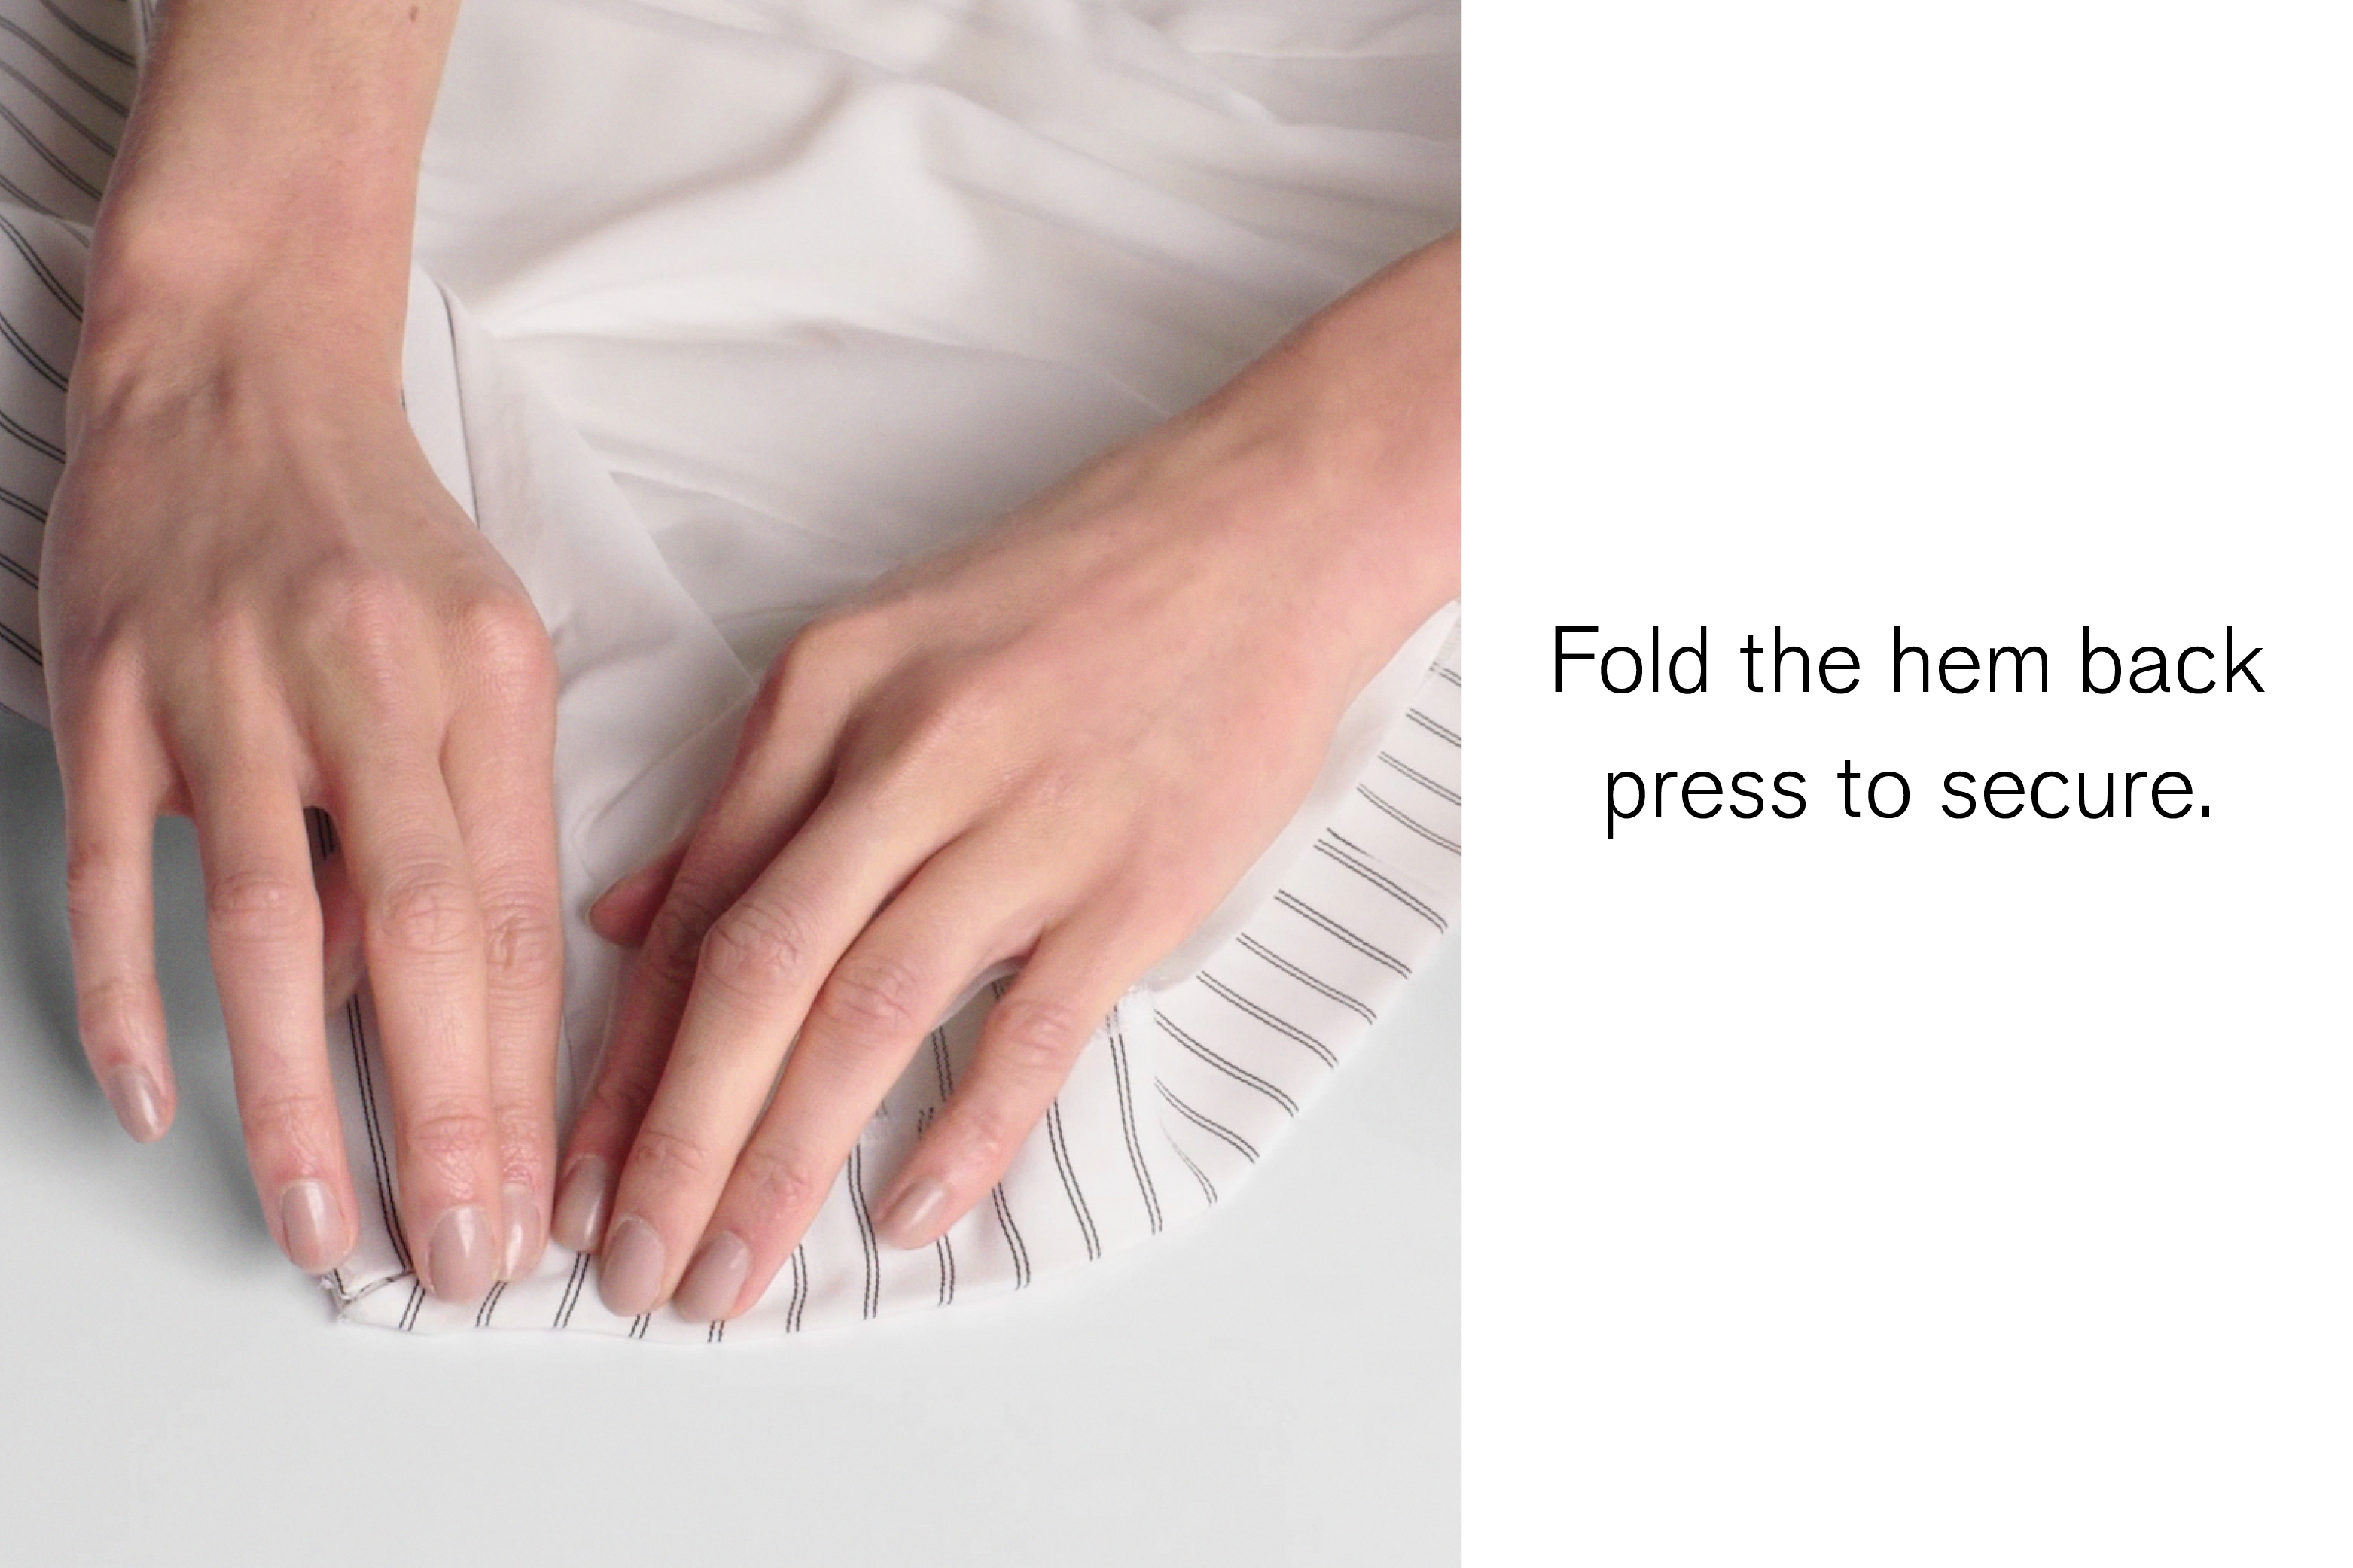 fold-the-hem-back-press-to-secure